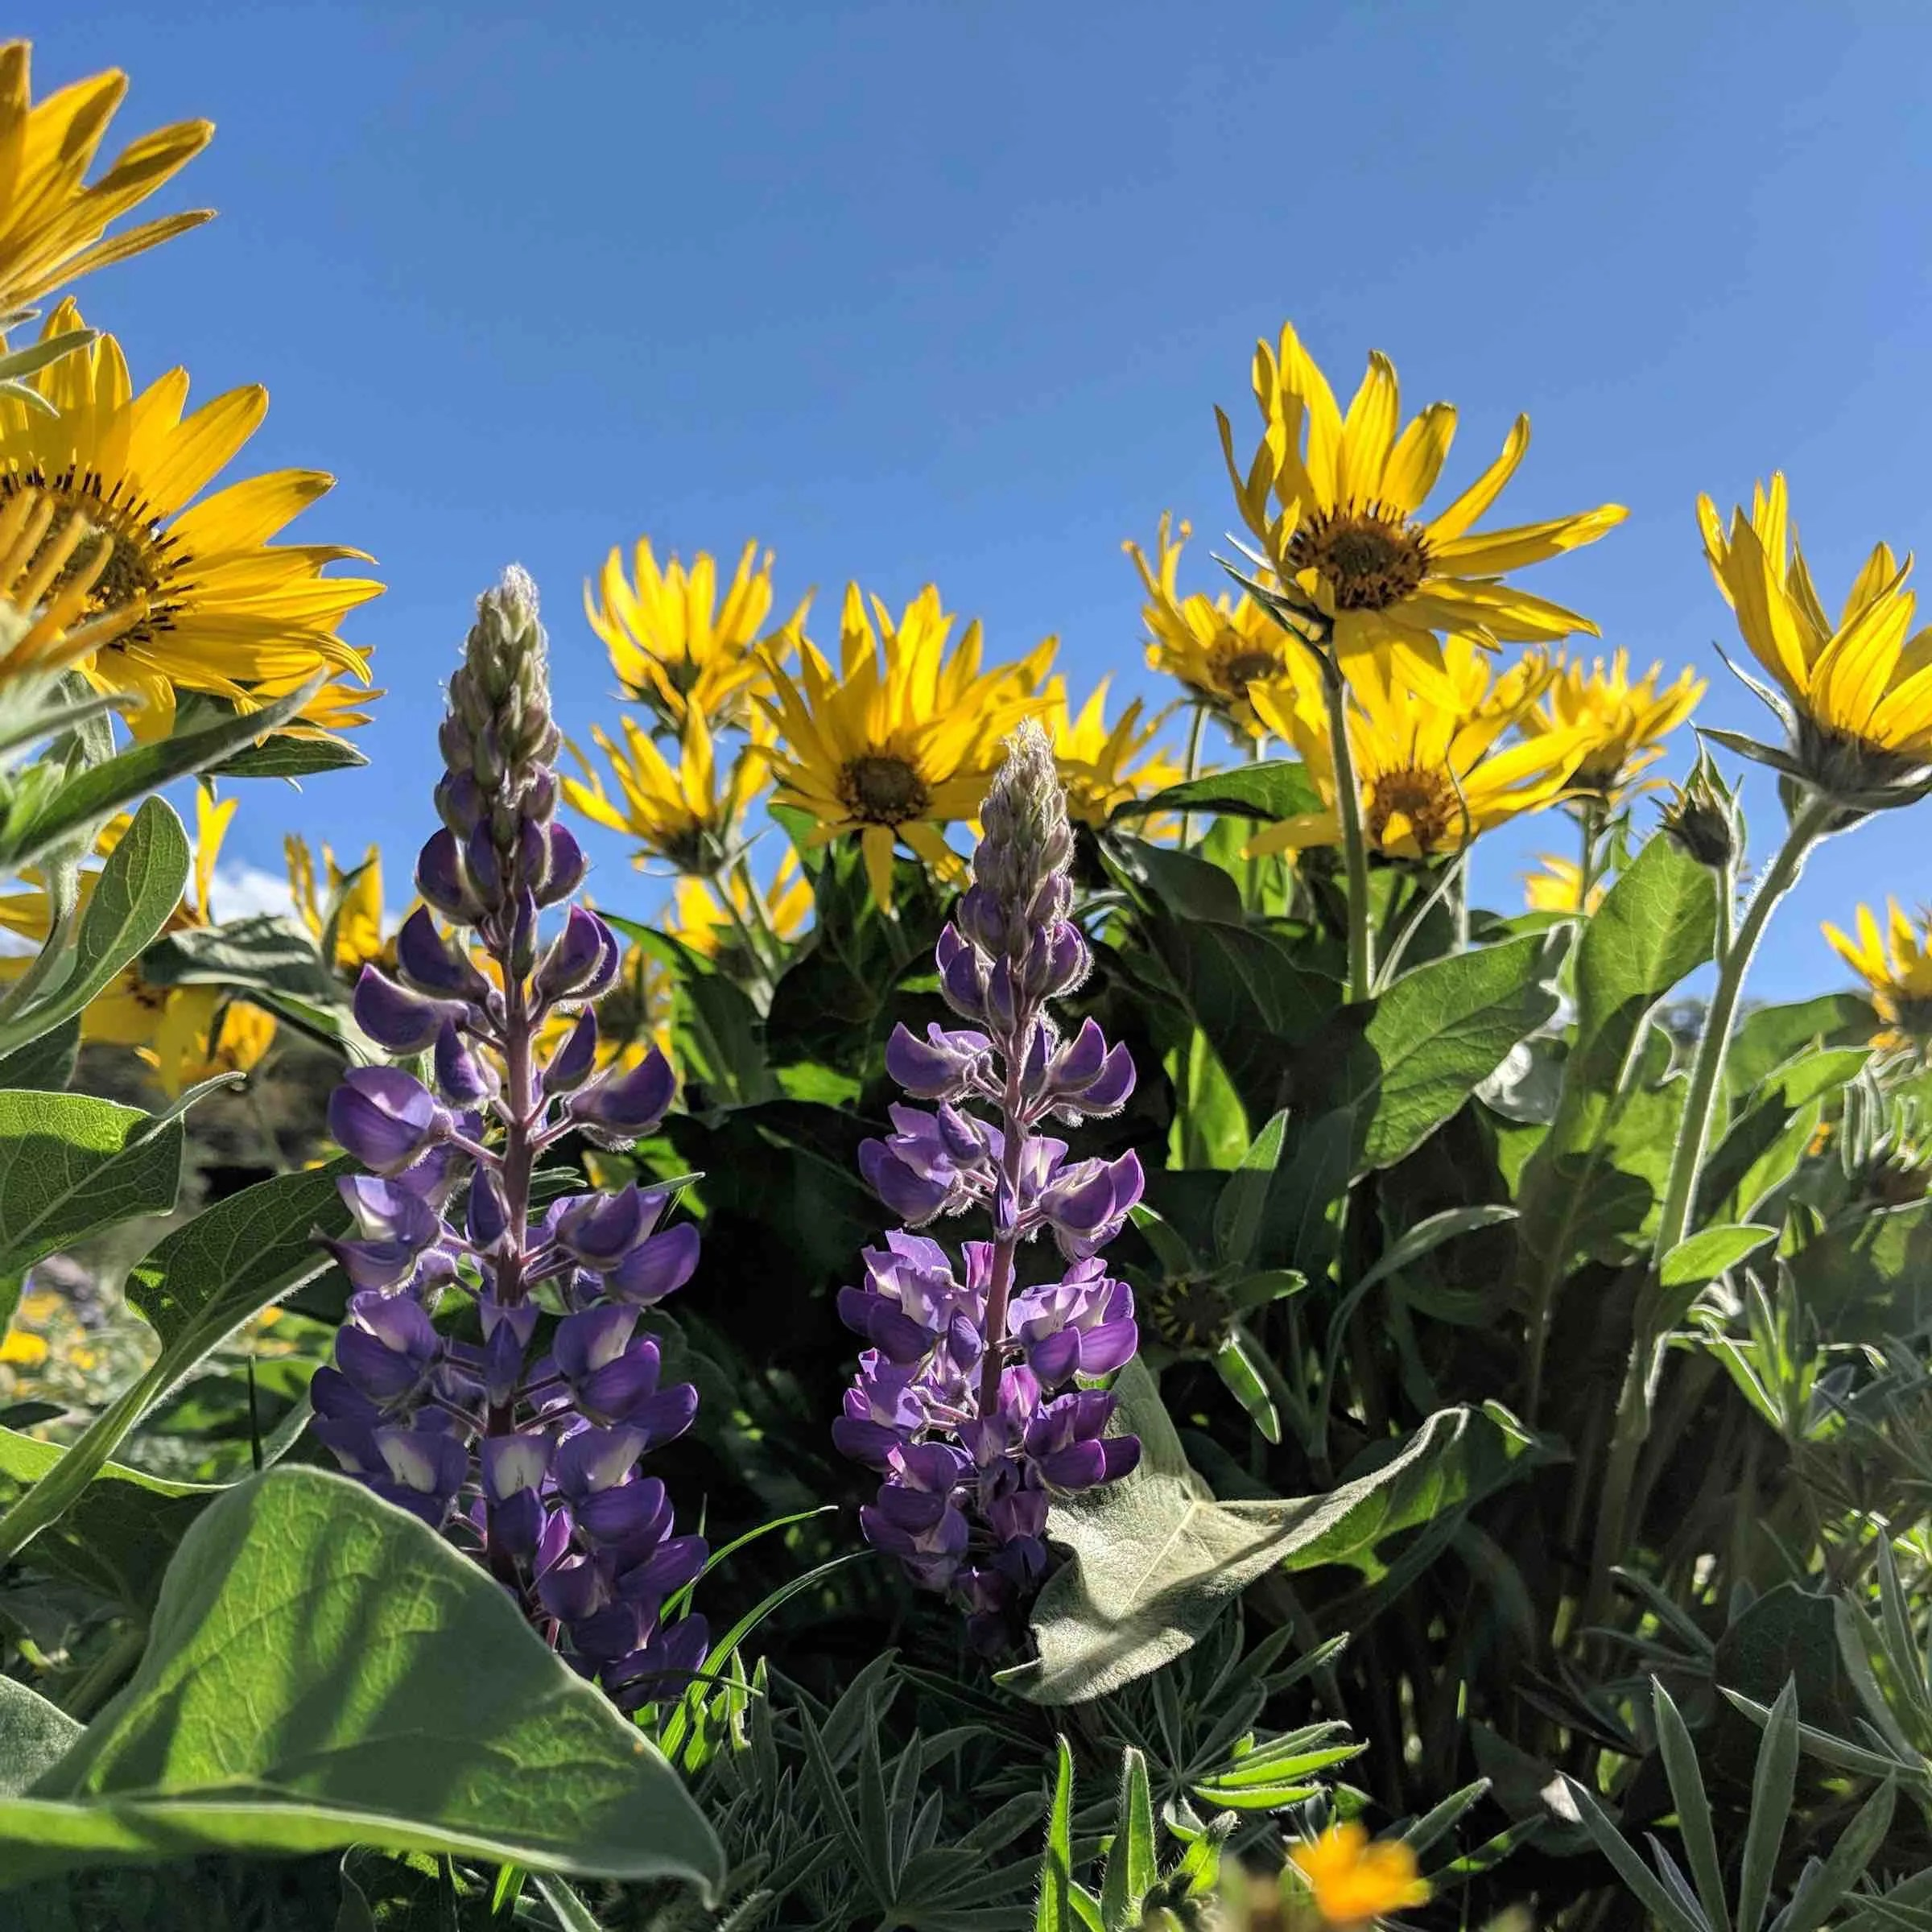 Lupine in the yellow balsamroot